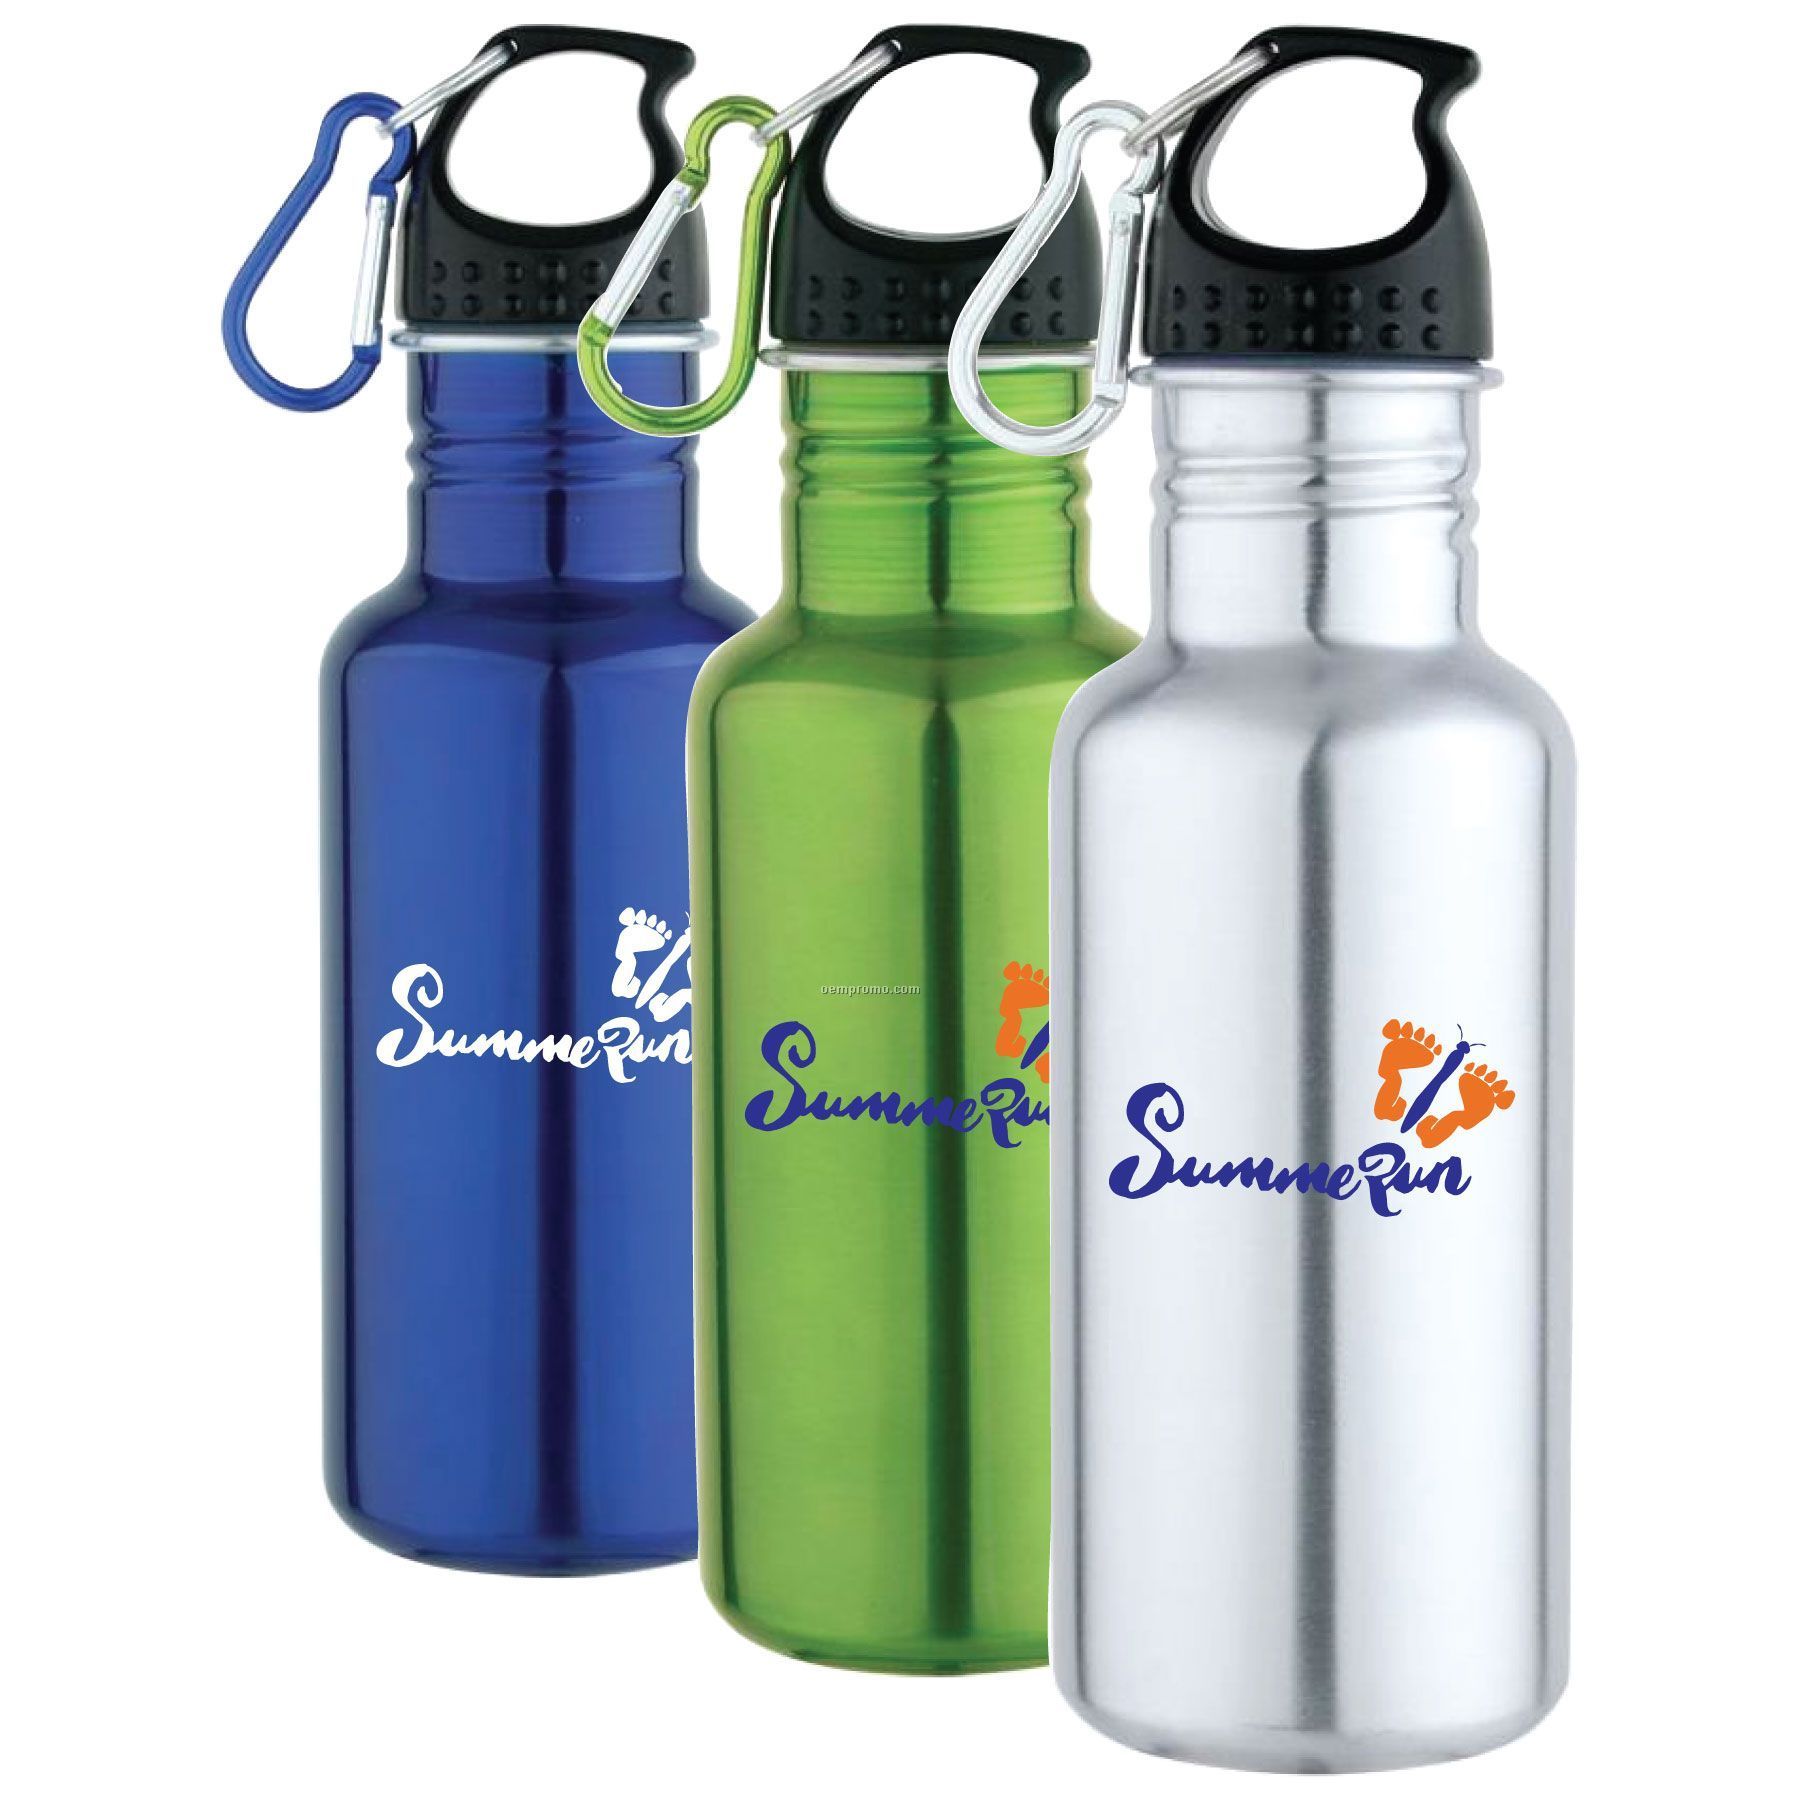 25 Oz Stainless Steel Wide Mouth Sports Bottle